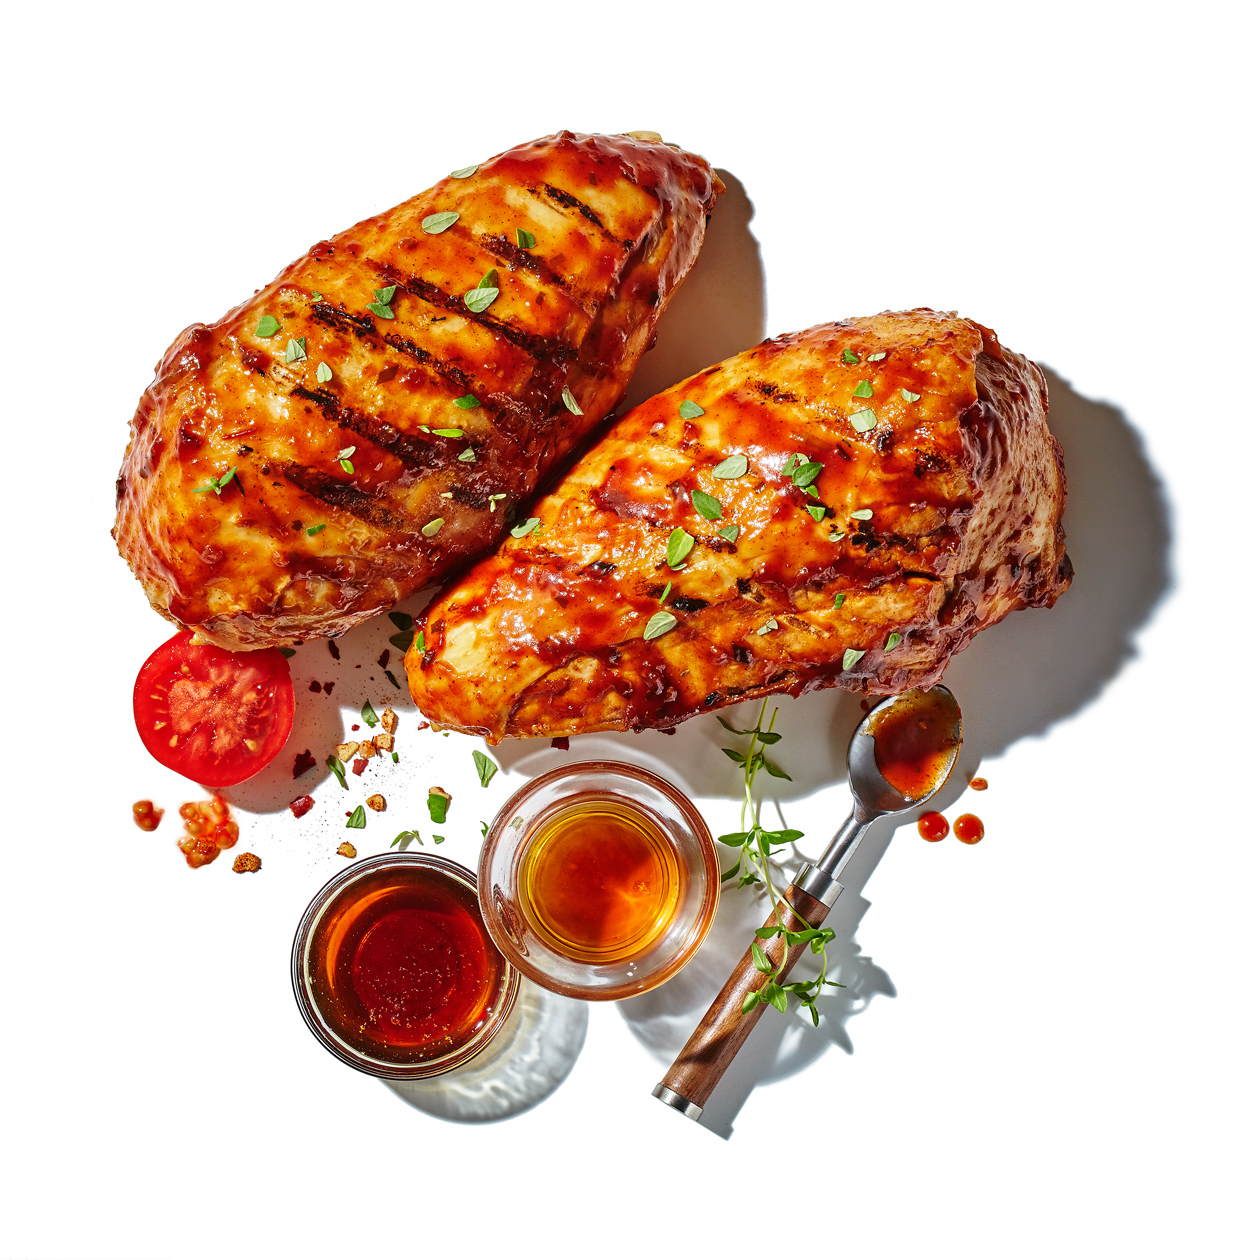 FRESH-MARKET-GRILLED-CHICKEN-BREAST